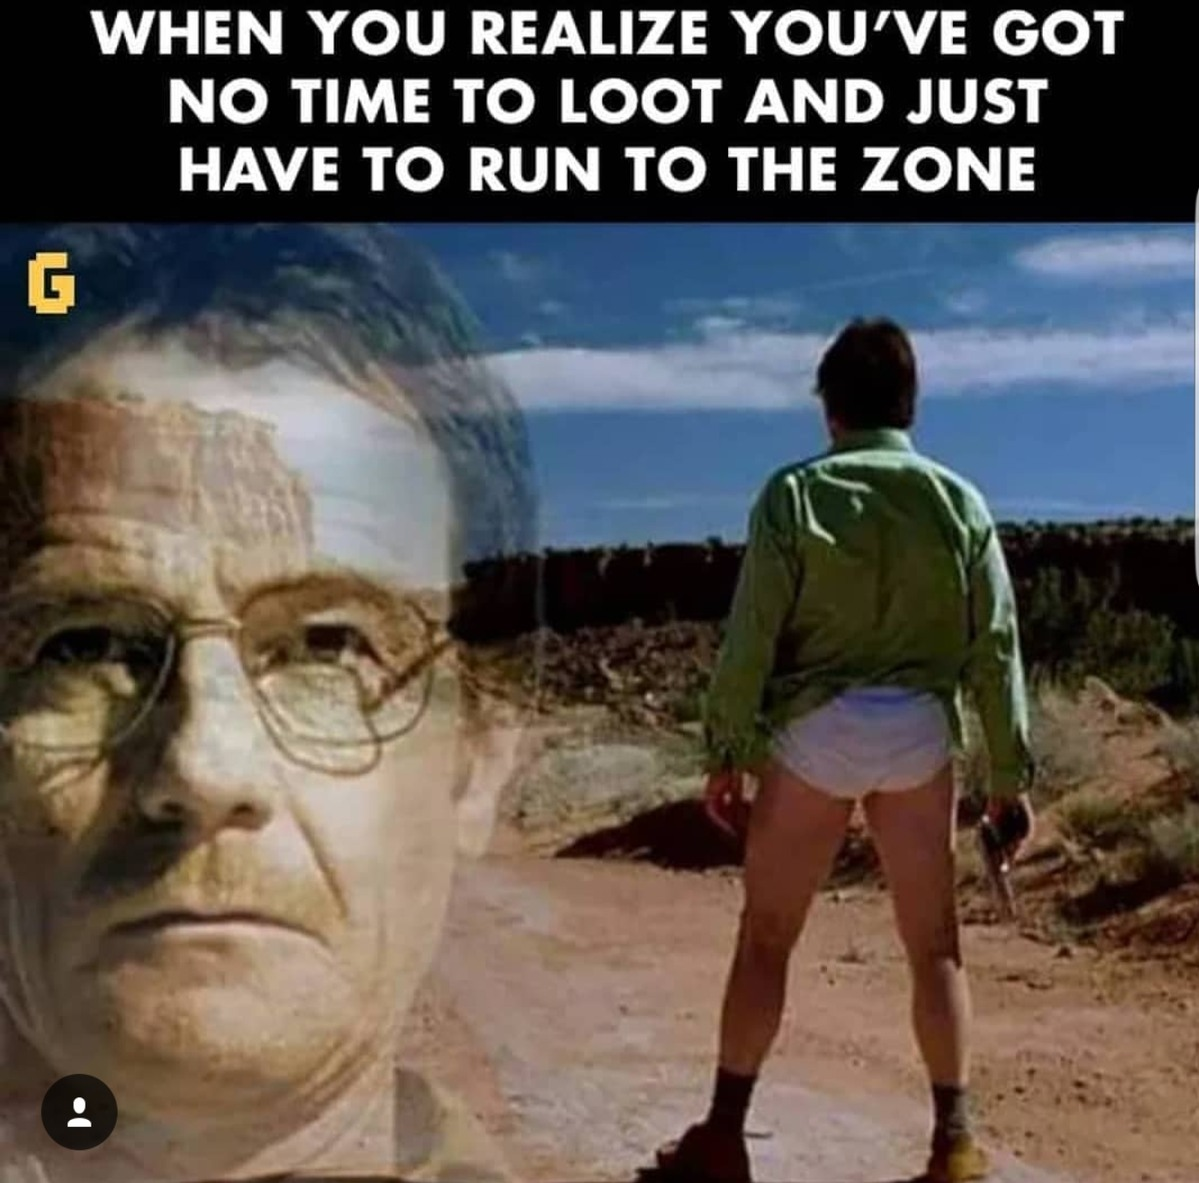 I dont know if the rest of the world will understand this pubg meme but a breaking bad fan could definitely die of laughing after watching this meme